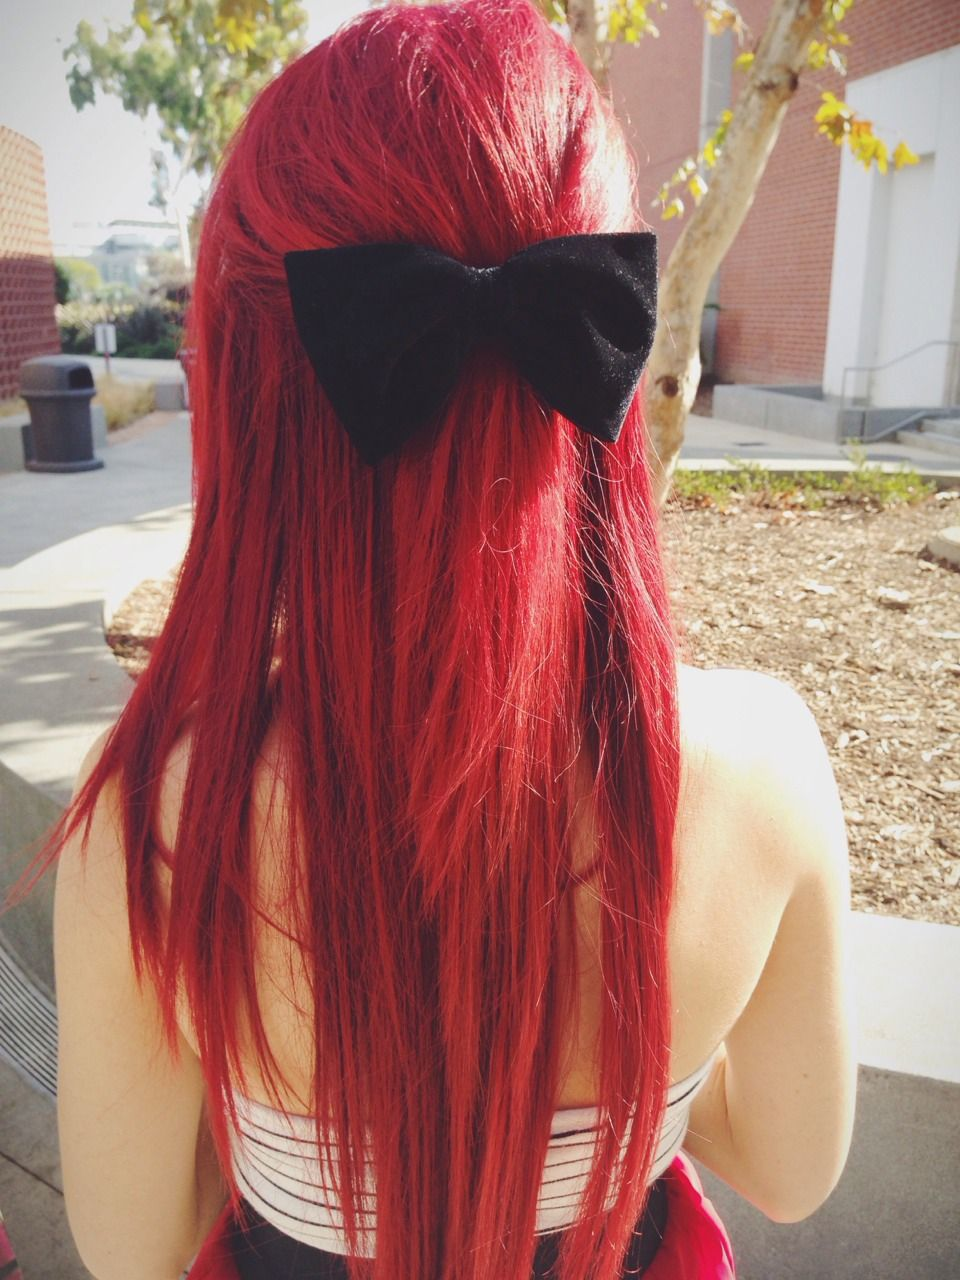 Red hair redhead pinterest red hair colourful hair and scene